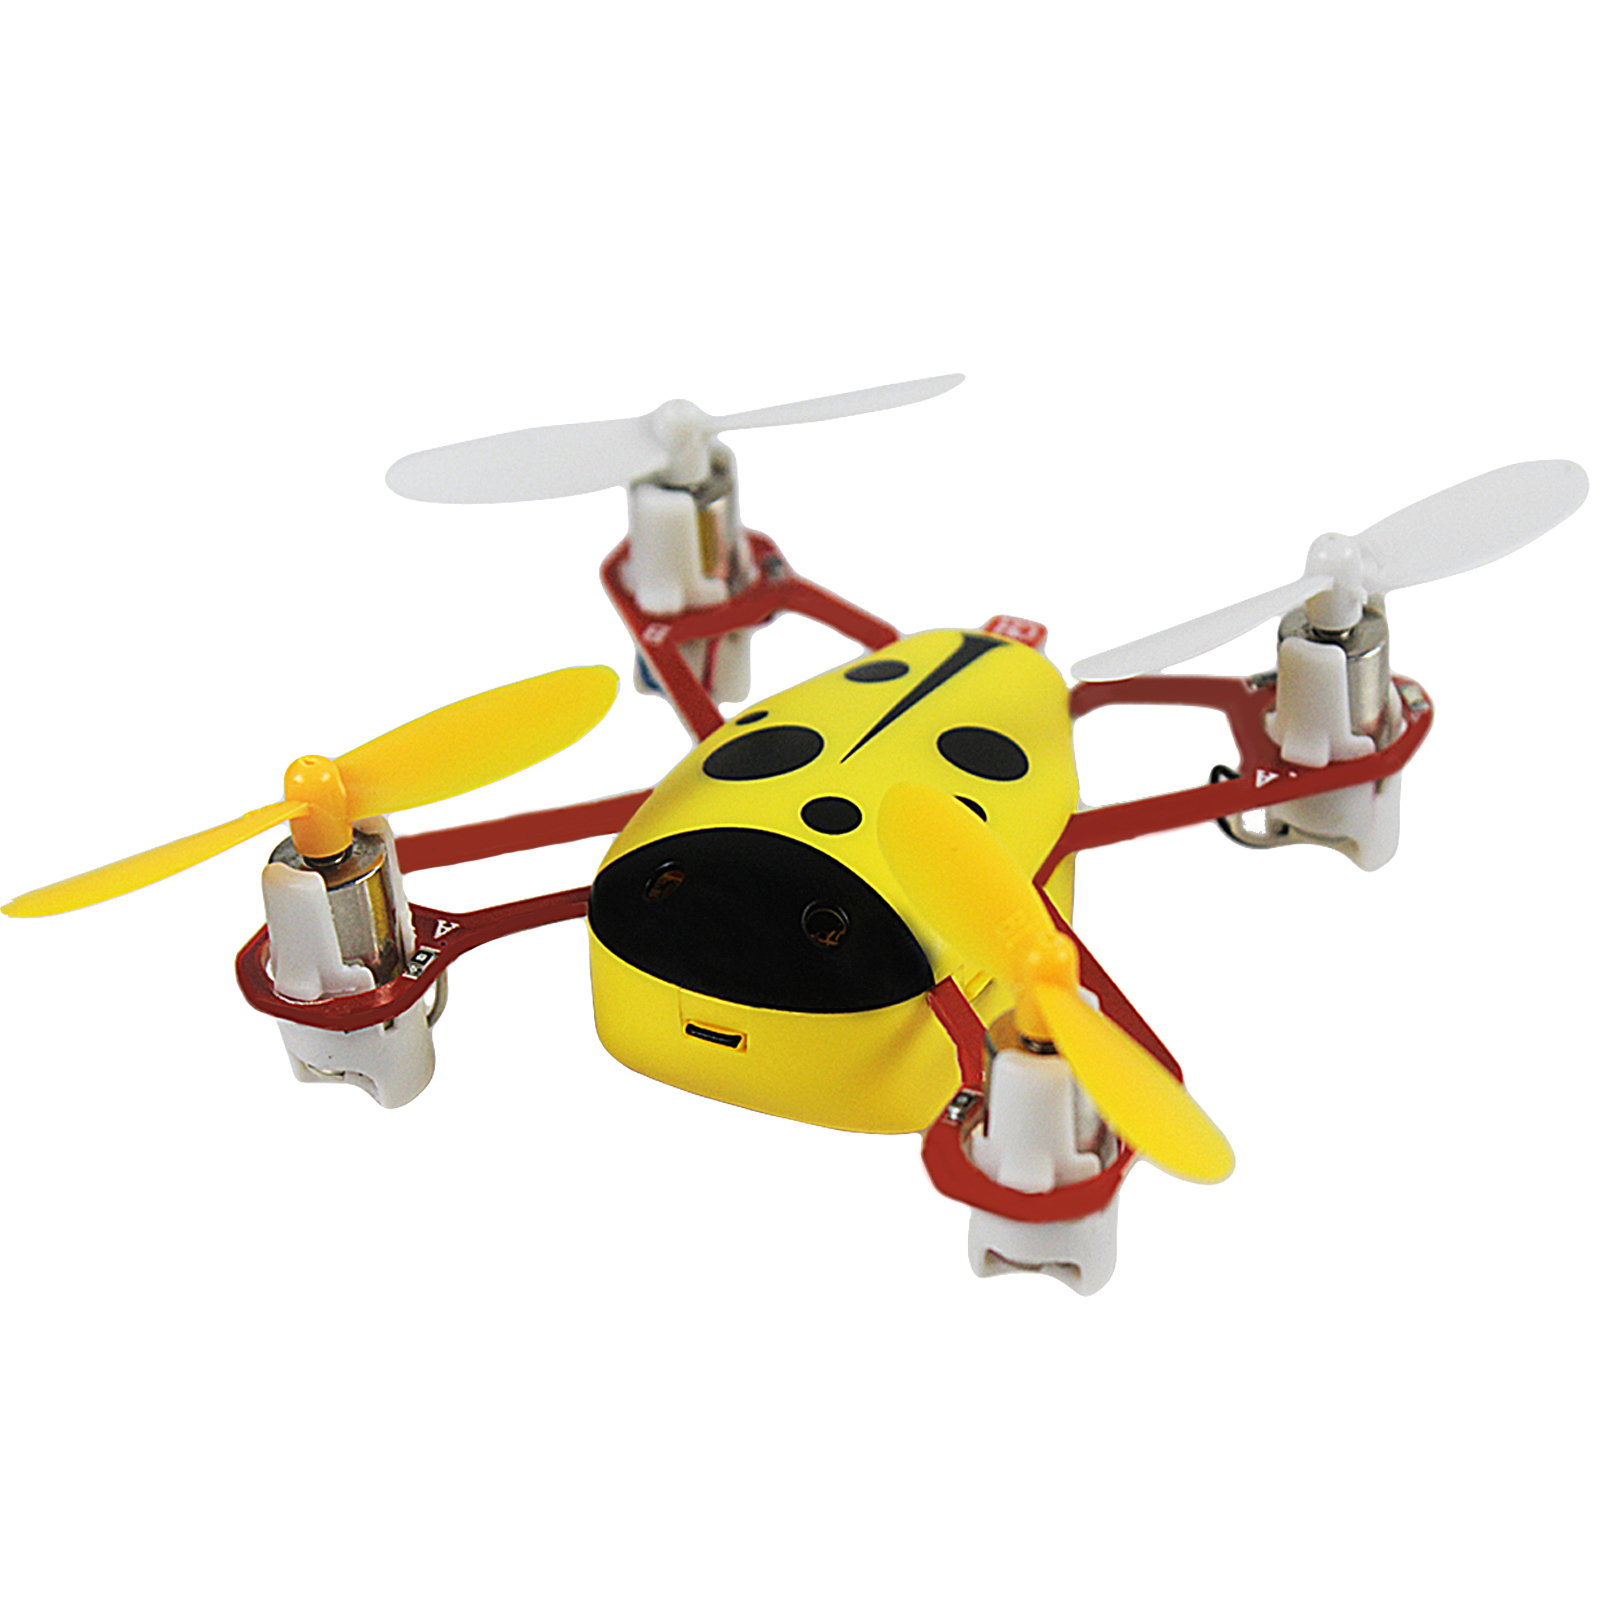 Cheerwing CHEER X1 2.4Ghz 4CH 6-axis Gyro Remote Control Nano Mini 3D Headless RC Quadcopter UFO Drone LCD Screen (Yellow)